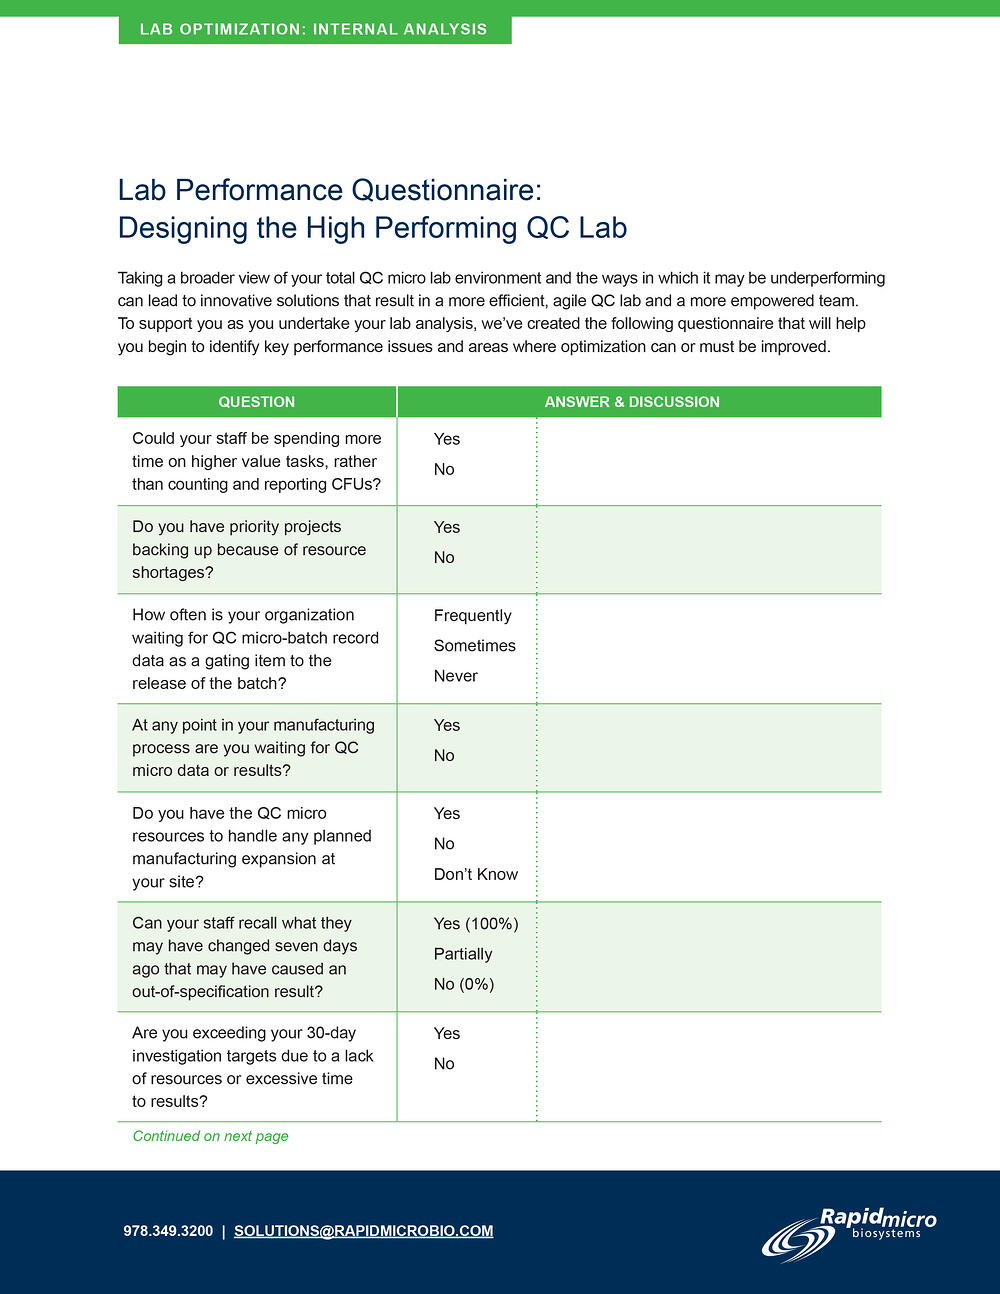 RMB_Lab Performance Questionnaire- page 1 redo